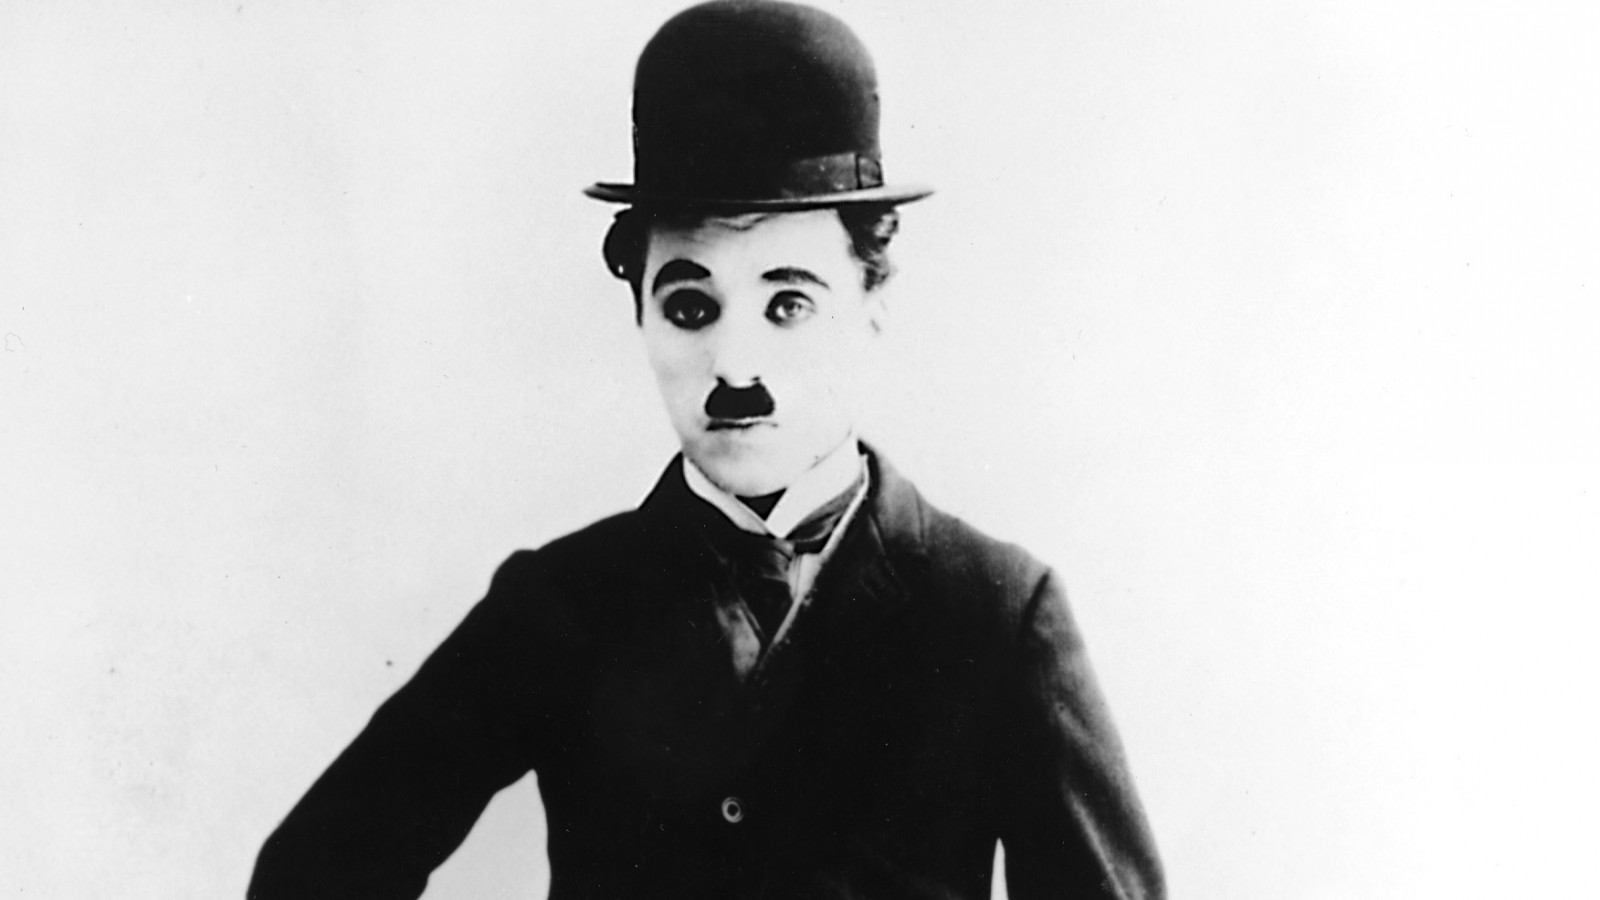 charlie chaplin hd wallpapers-8 | HD Wallpapers, HD images ...